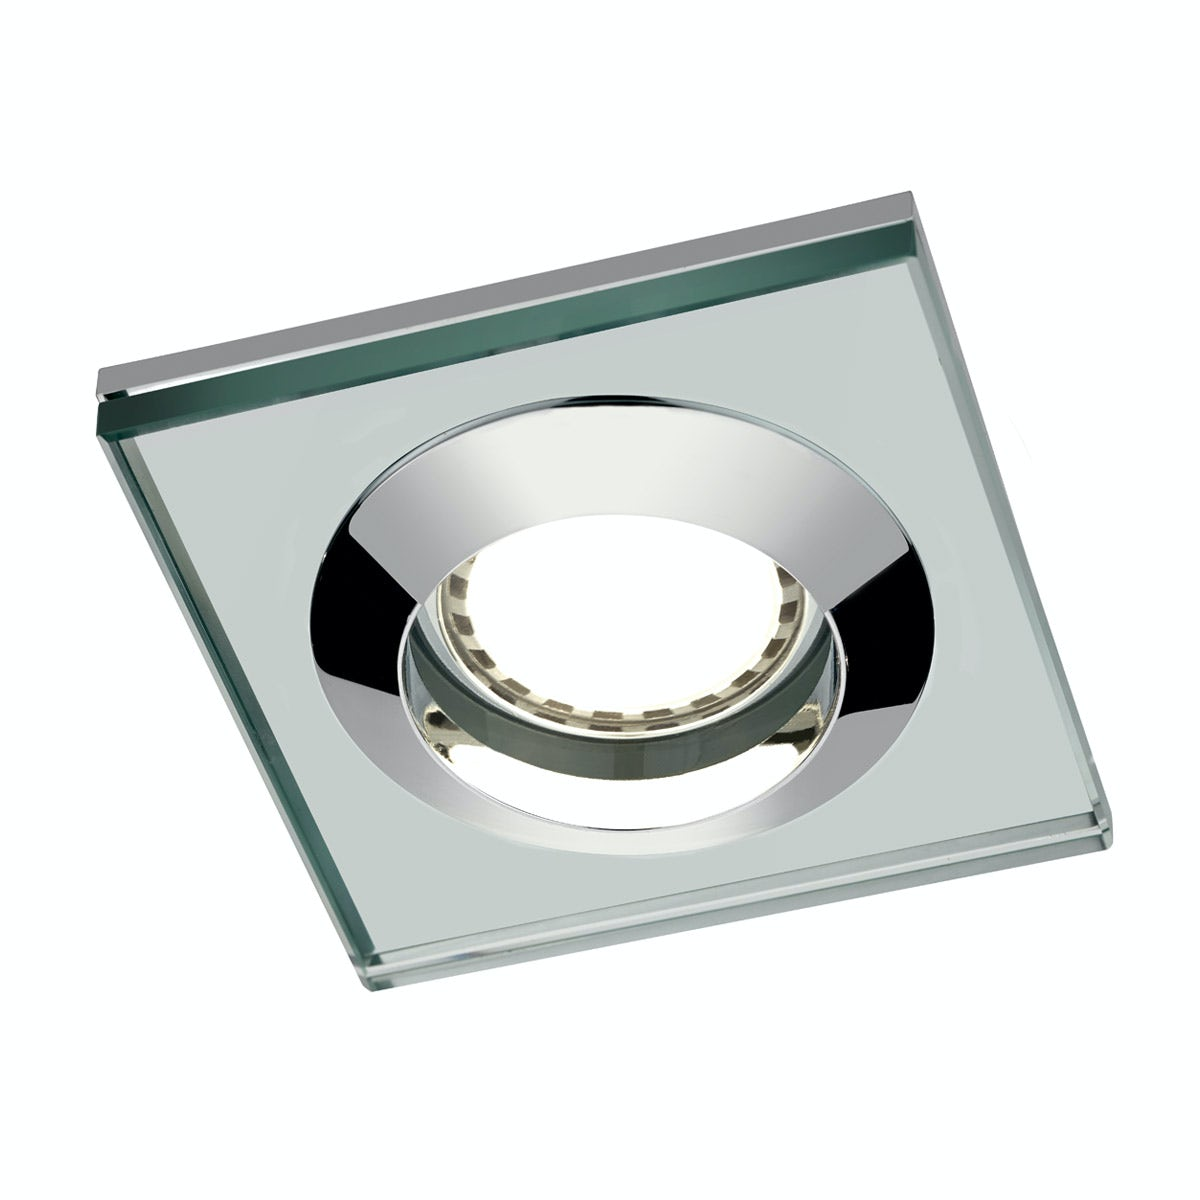 Mode Square glass shower light with dimmable bulb in warm white